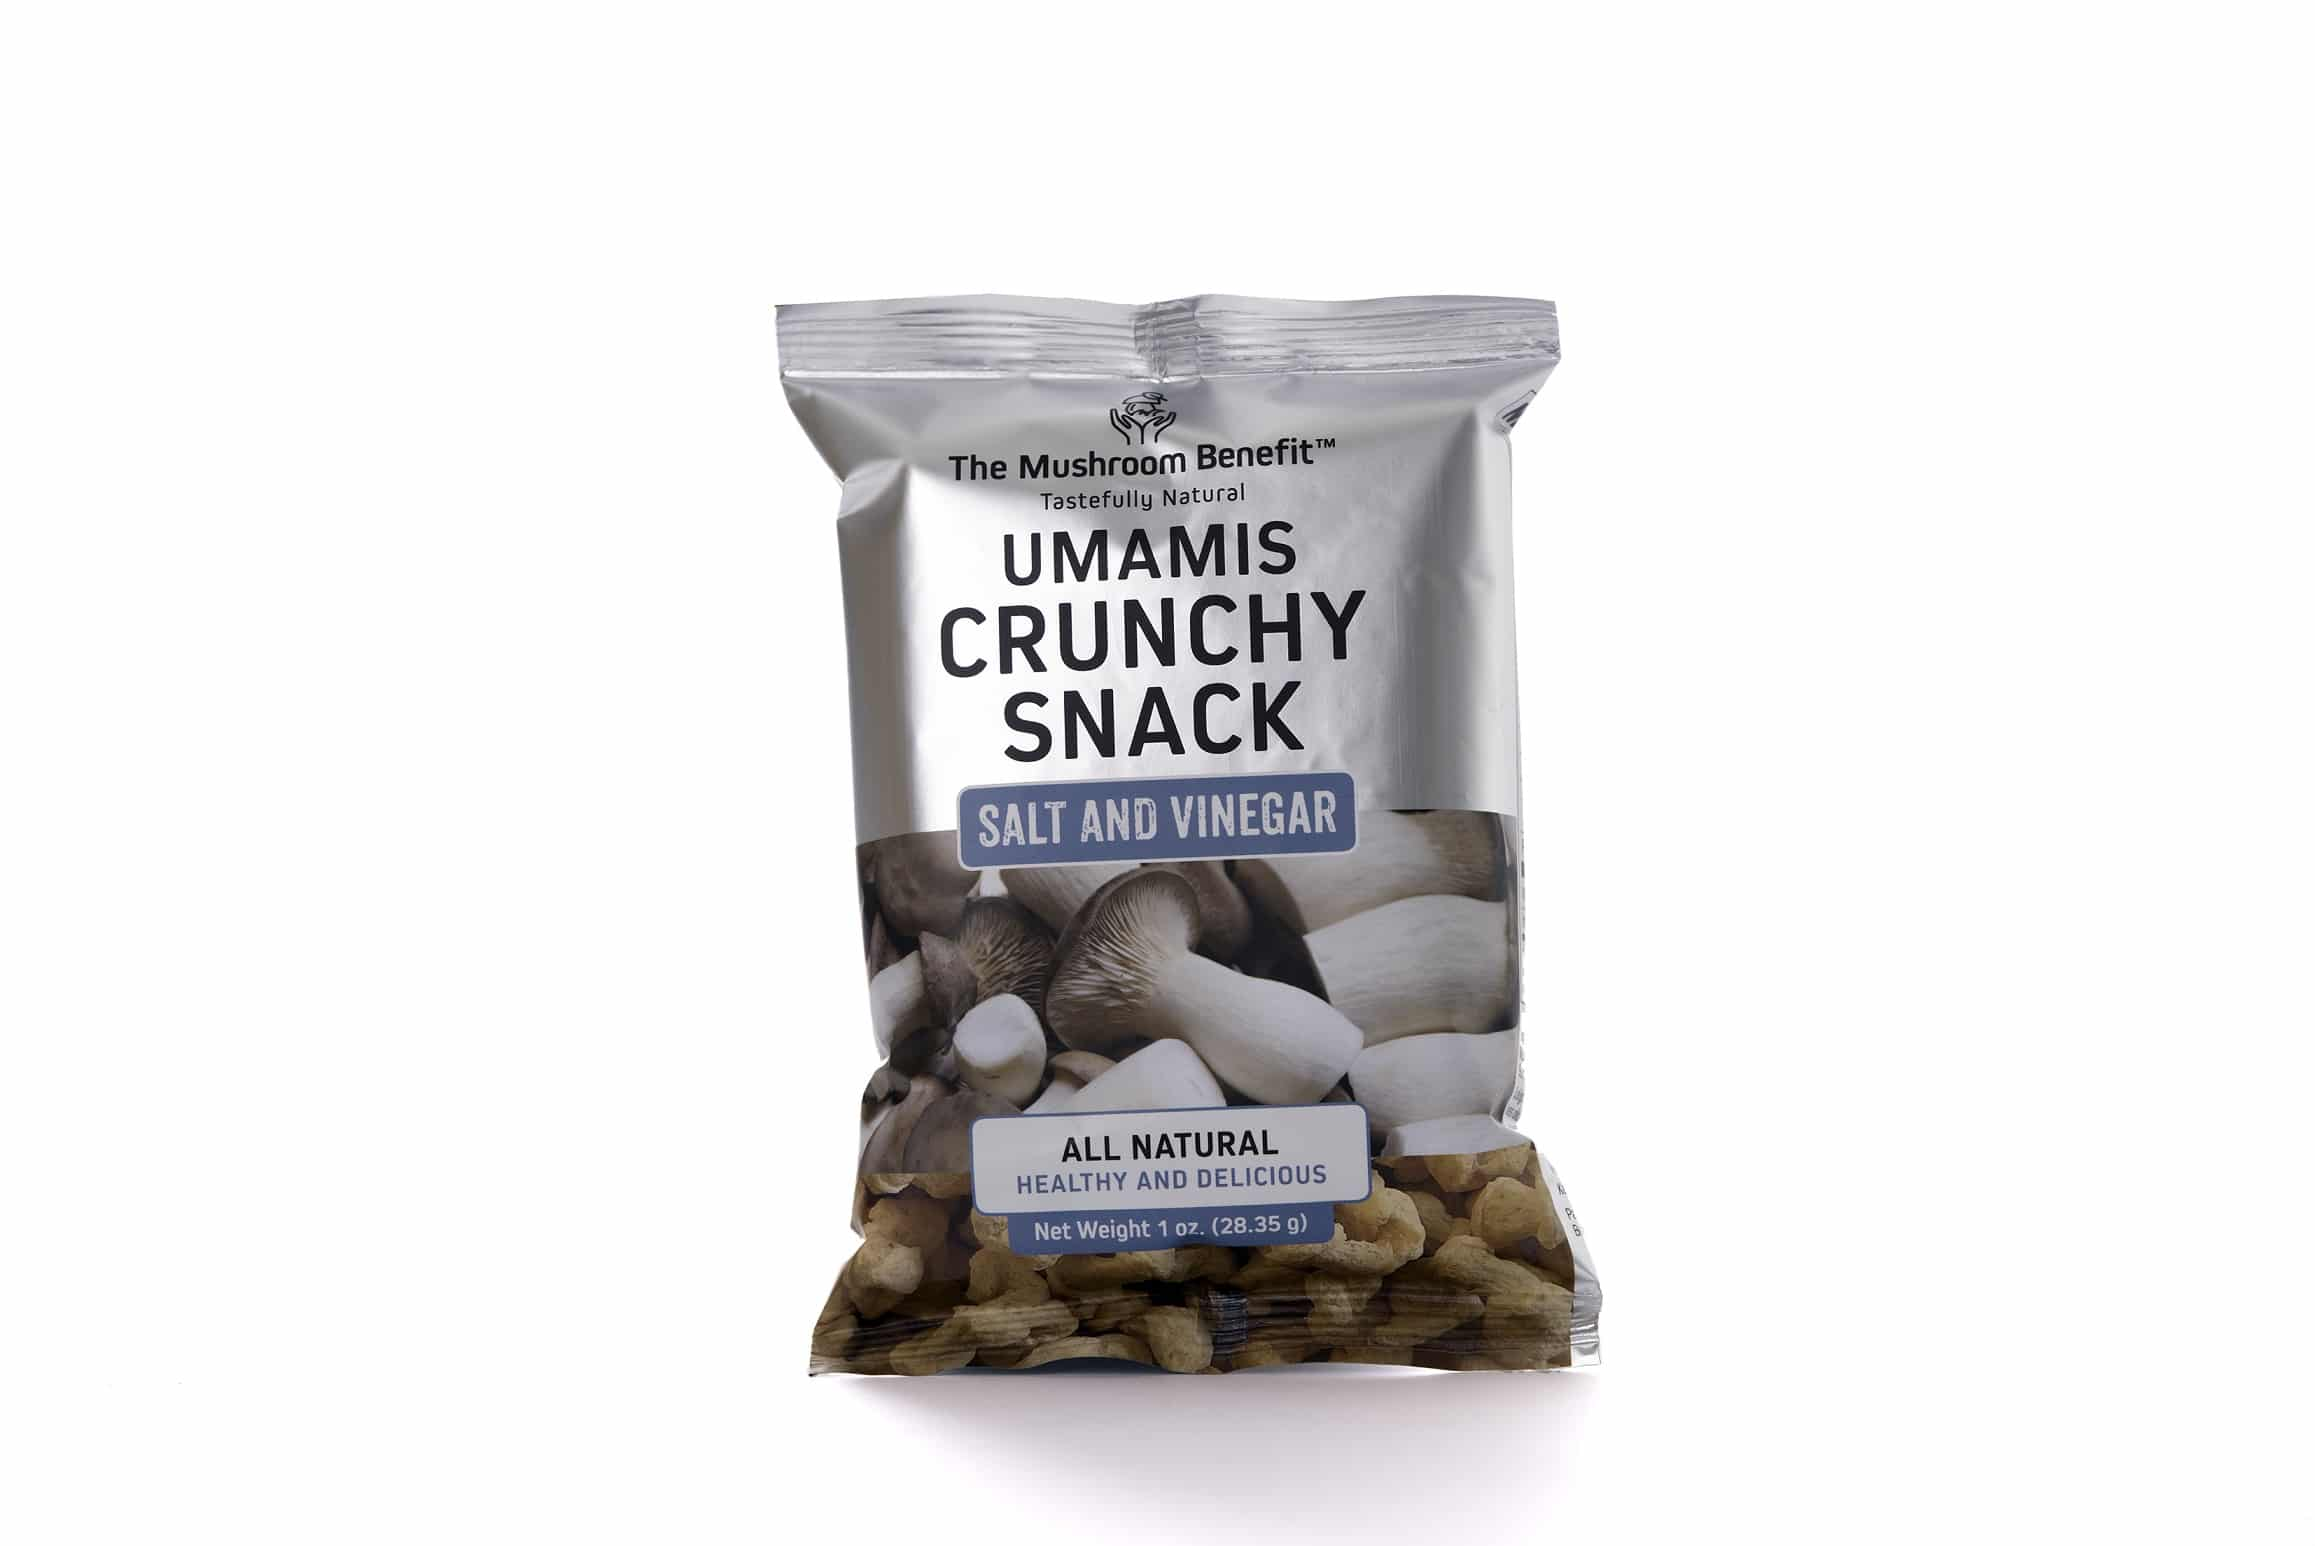 The Mushroom Benefit Introduces Umamis Crunchy Snack Line